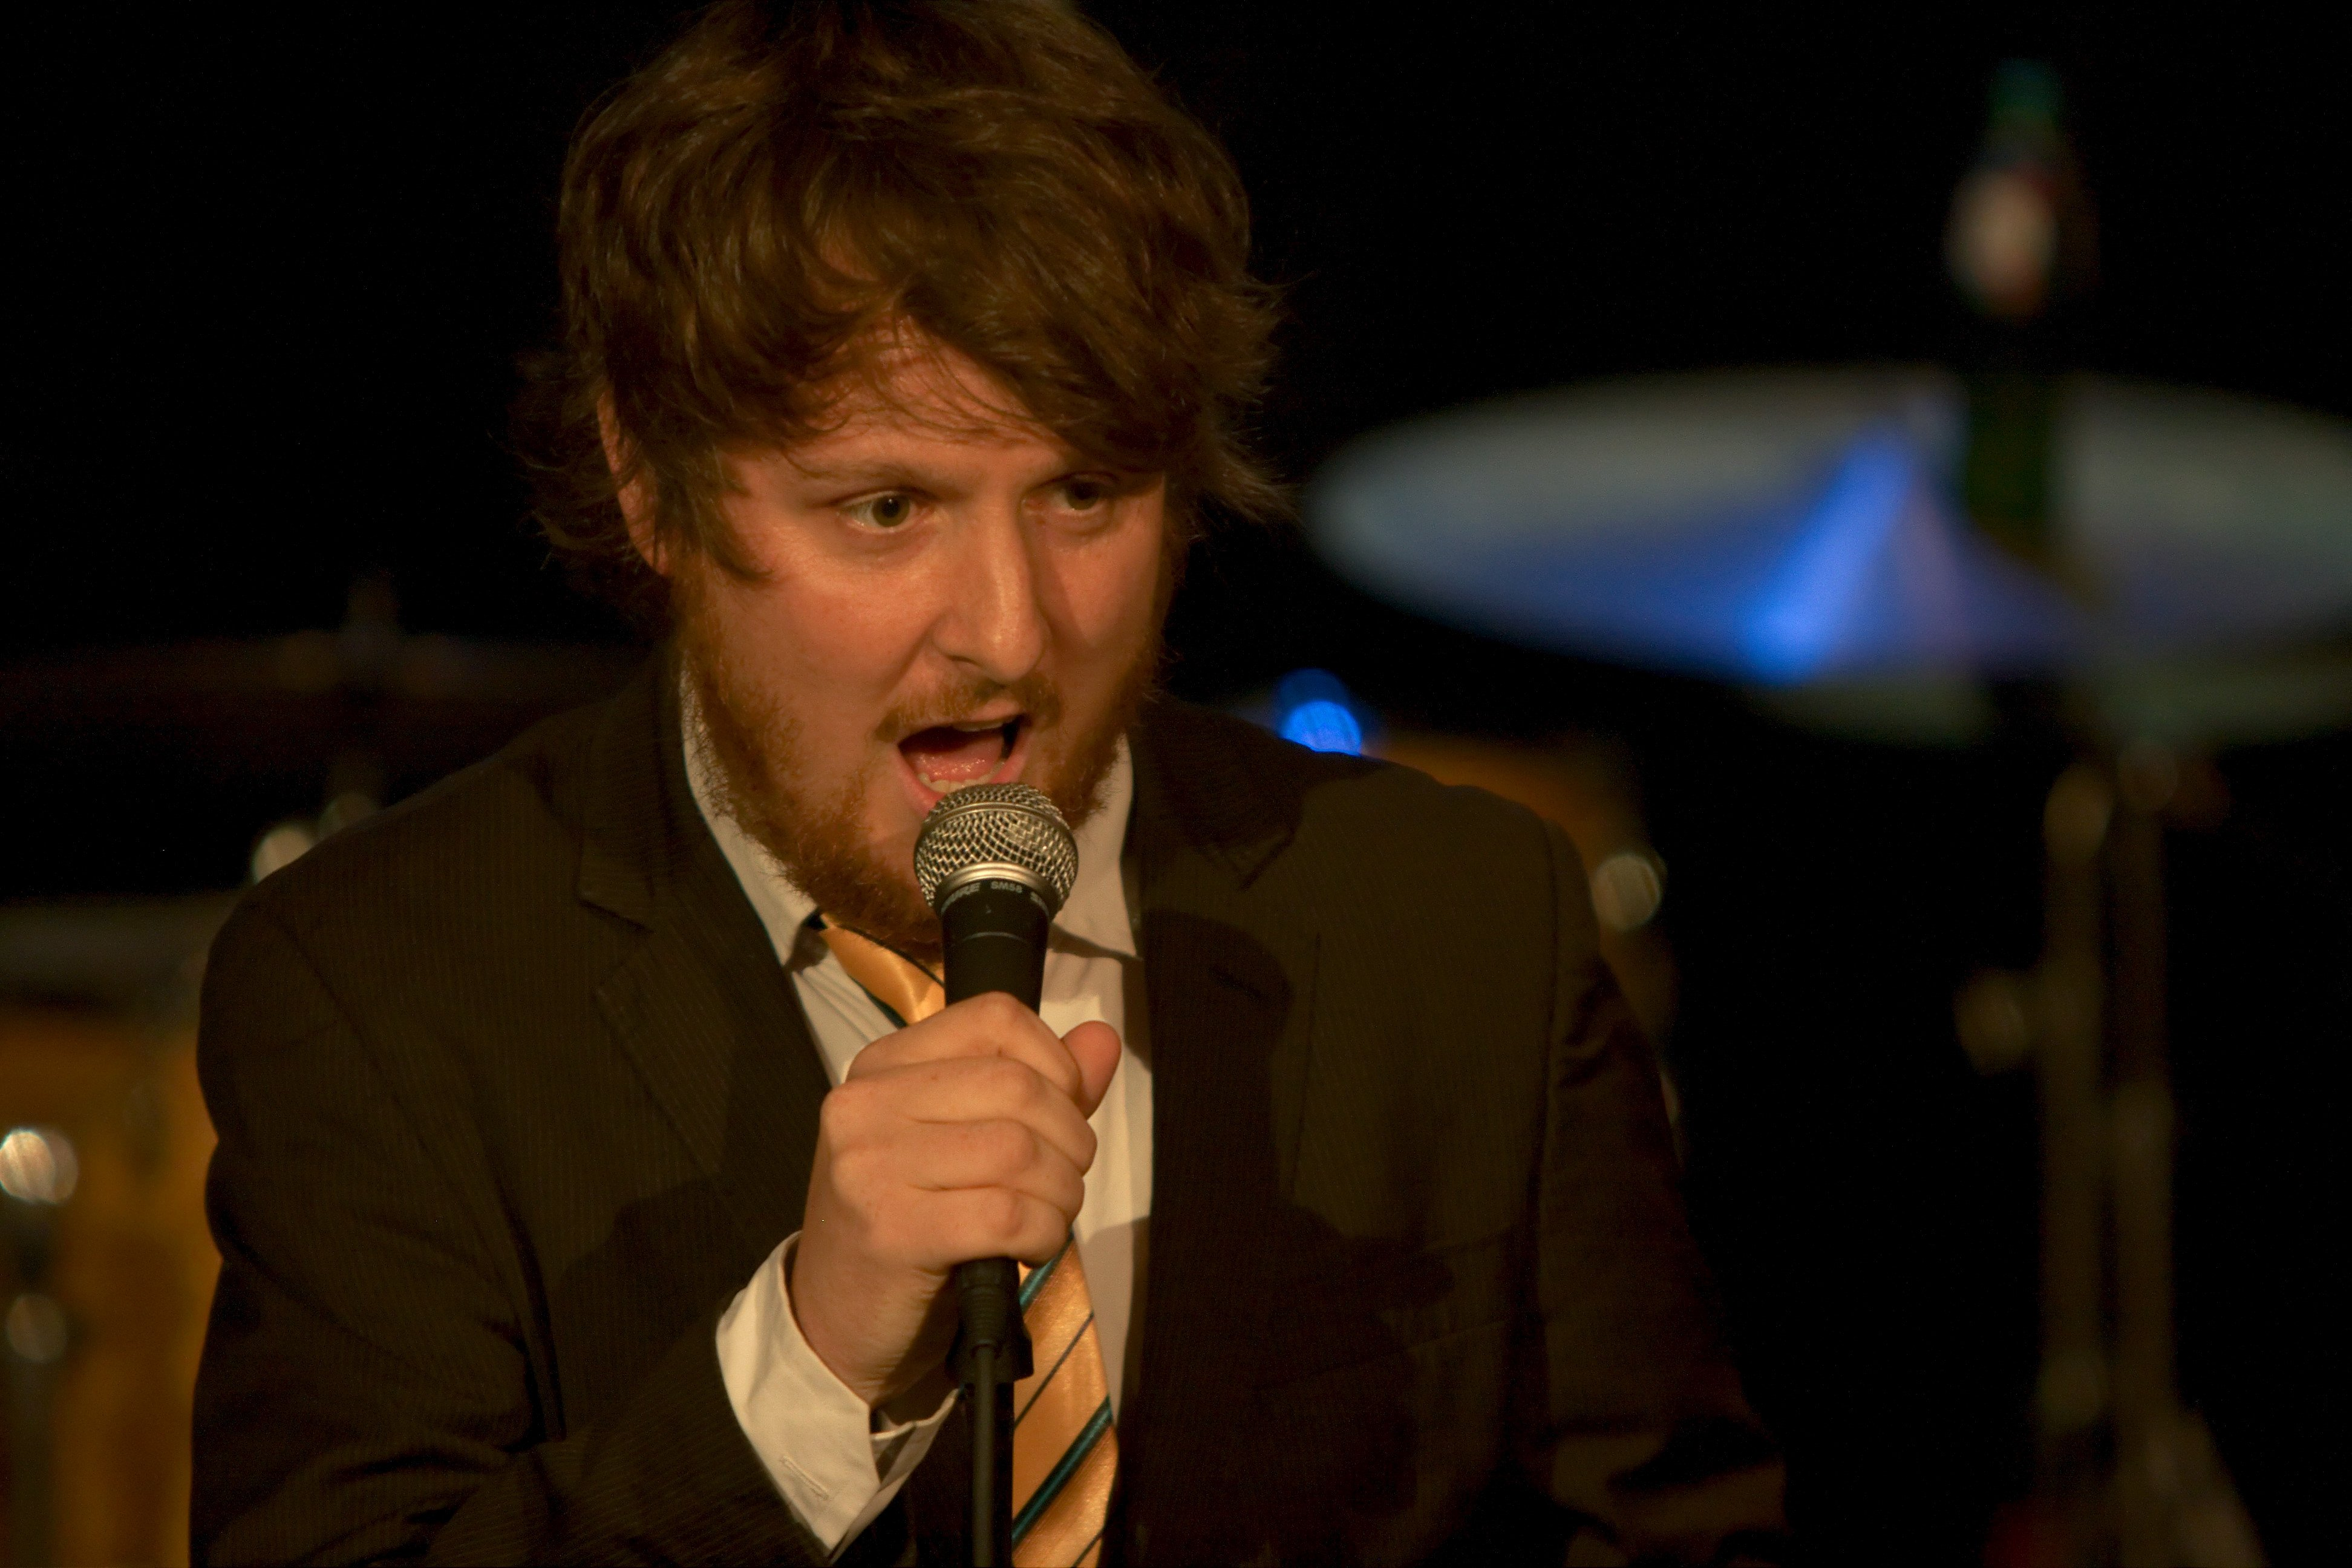 Tim Key of the Horne Section (led by Alex Horne, an ex-Footlight)